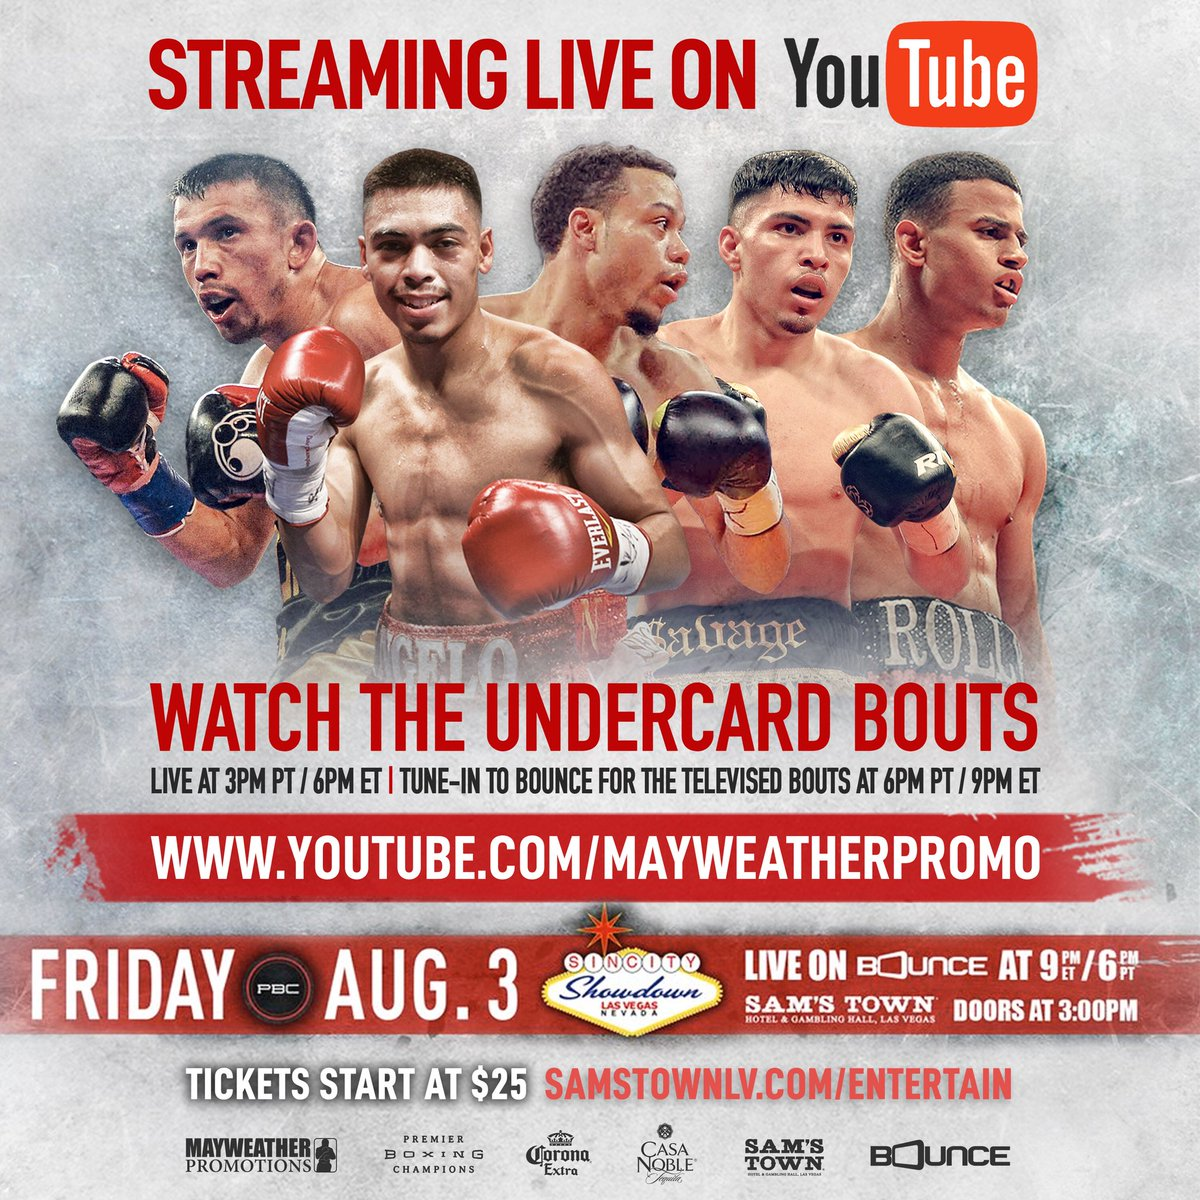 test Twitter Media - Not in Vegas? Visit our YouTube page @ 3pm PT/6pm ET for coverage of the undercard action! Tune into @bouncetv @ 6pm PT/9pm ET.🥊 https://t.co/wOyrX0ws8r